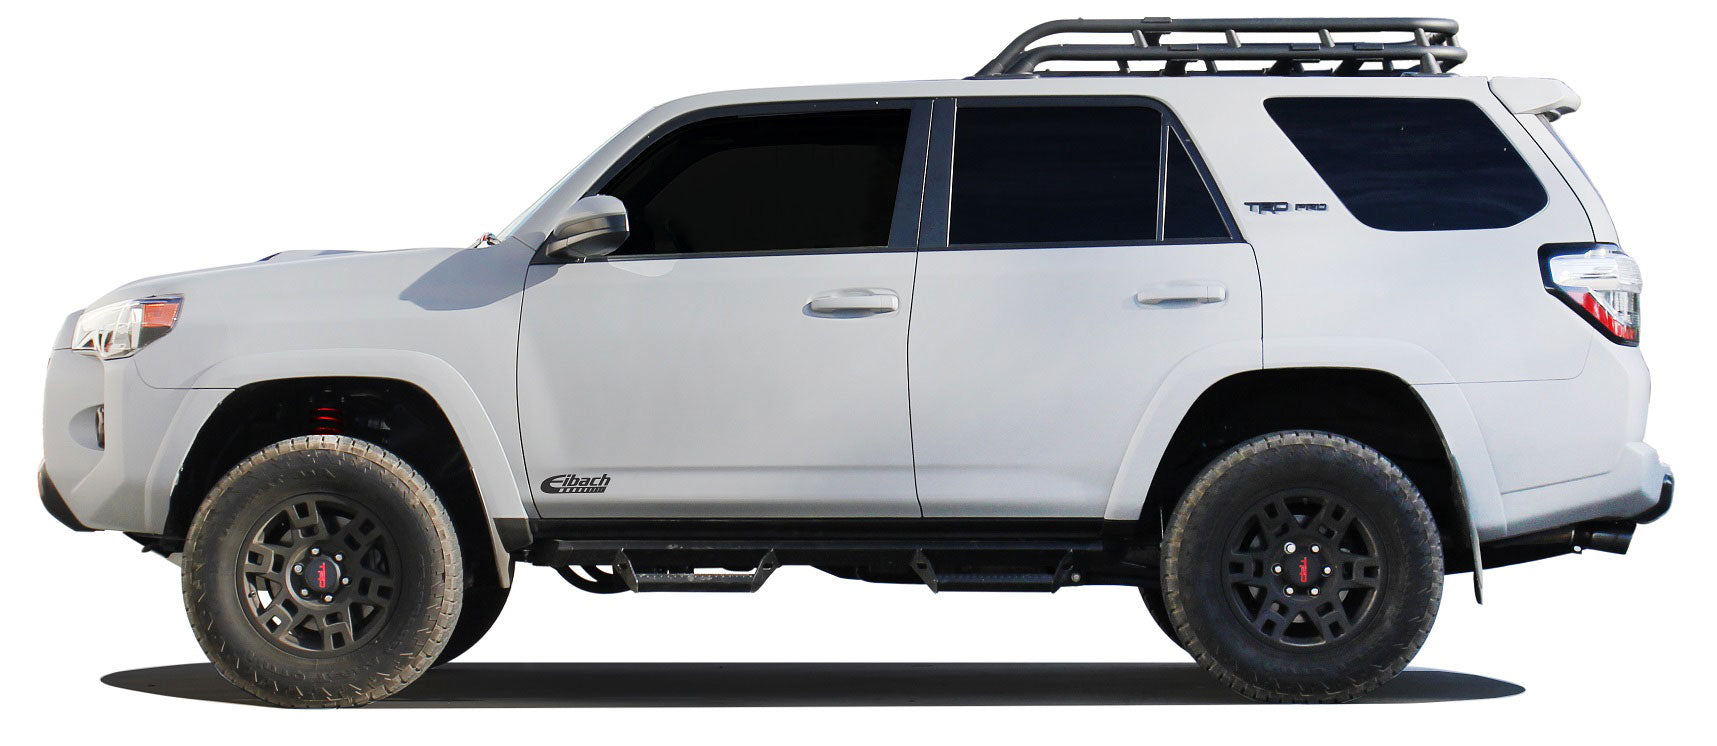 2019 2020 Toyota 4runner Trd Pro Eibach Pro Lift Kit Neo Garage